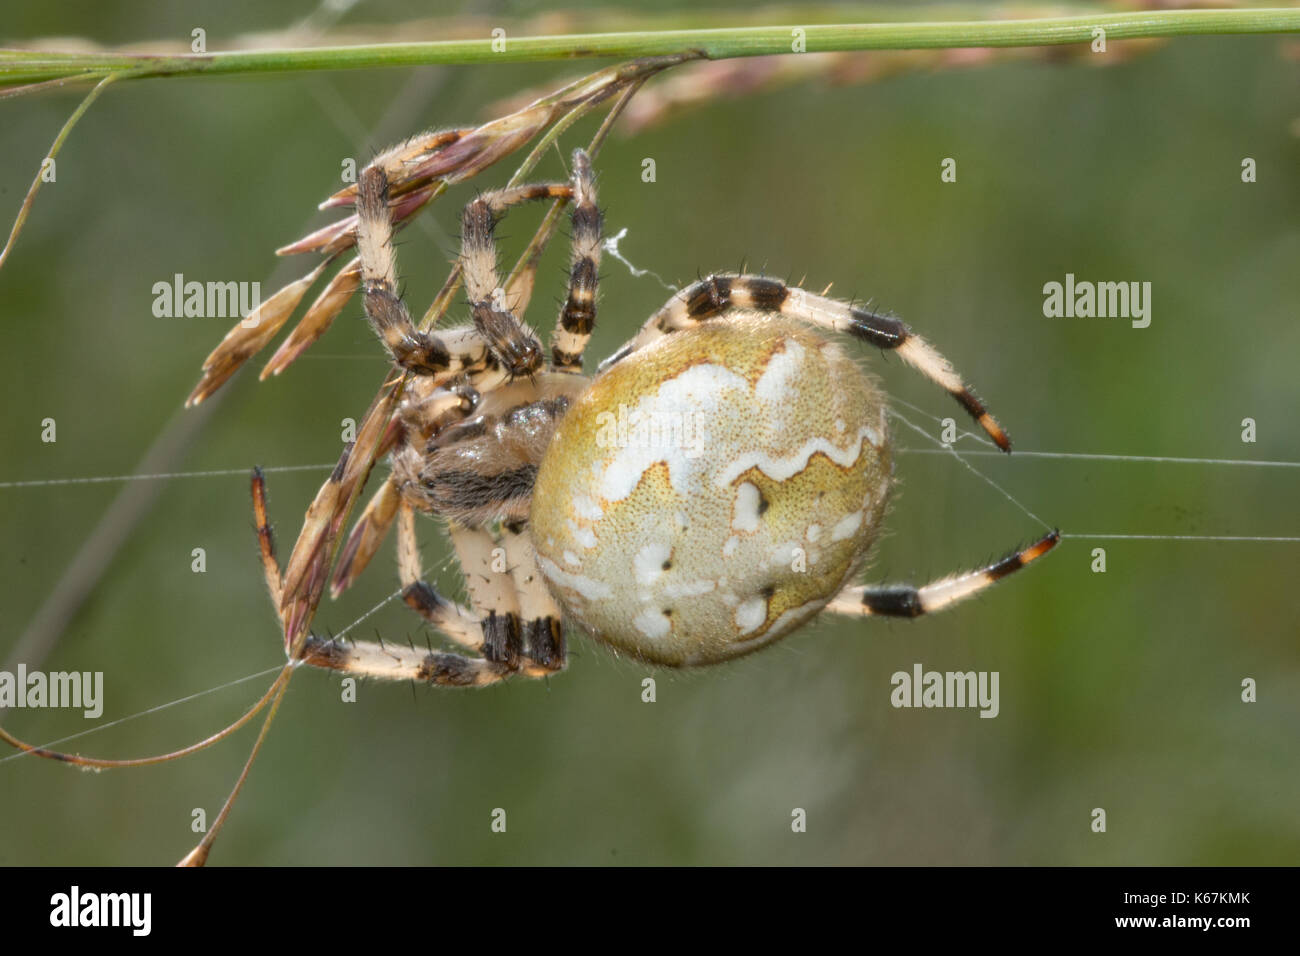 Close-up of female four-spotted orbweaver spider on a web in heathland in Hampshire, UK - Stock Image